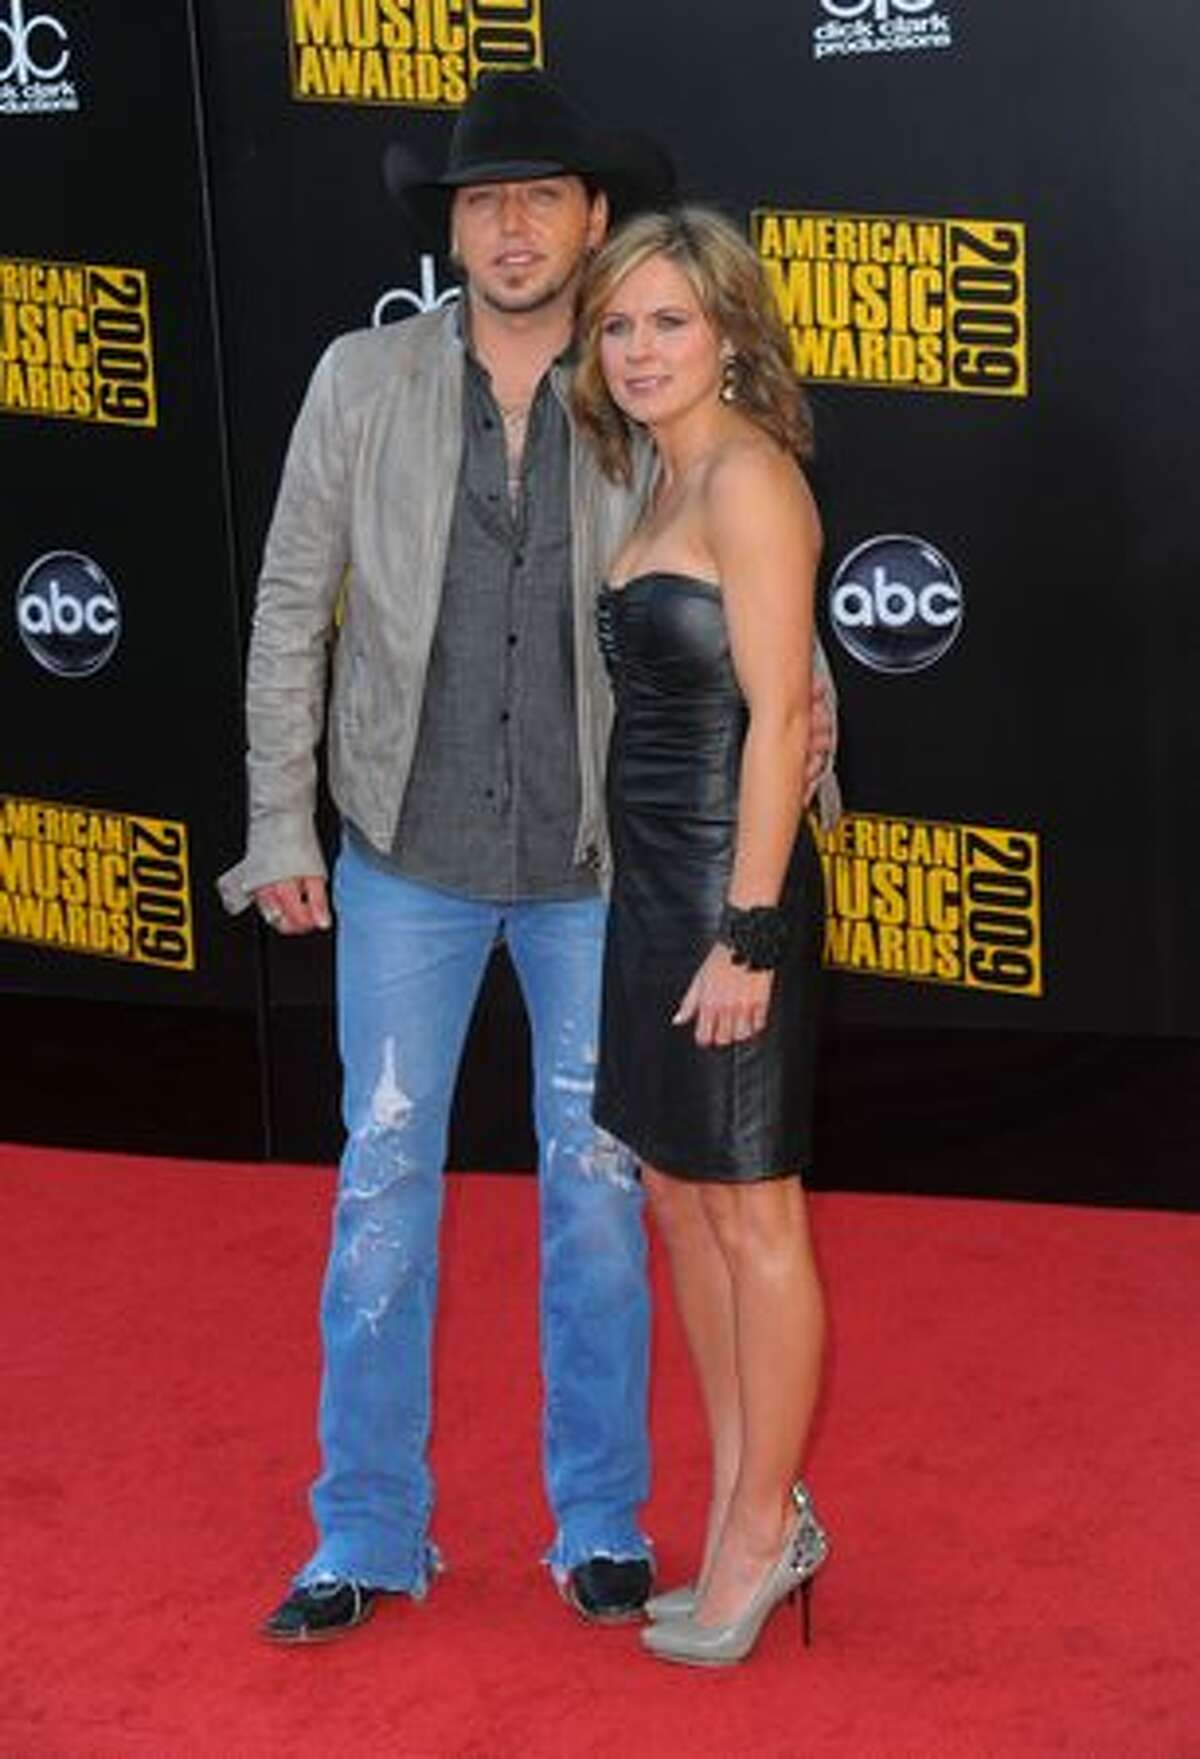 Singer/songwriter Jason Aldean (left) and Jessica Aldean arrive.